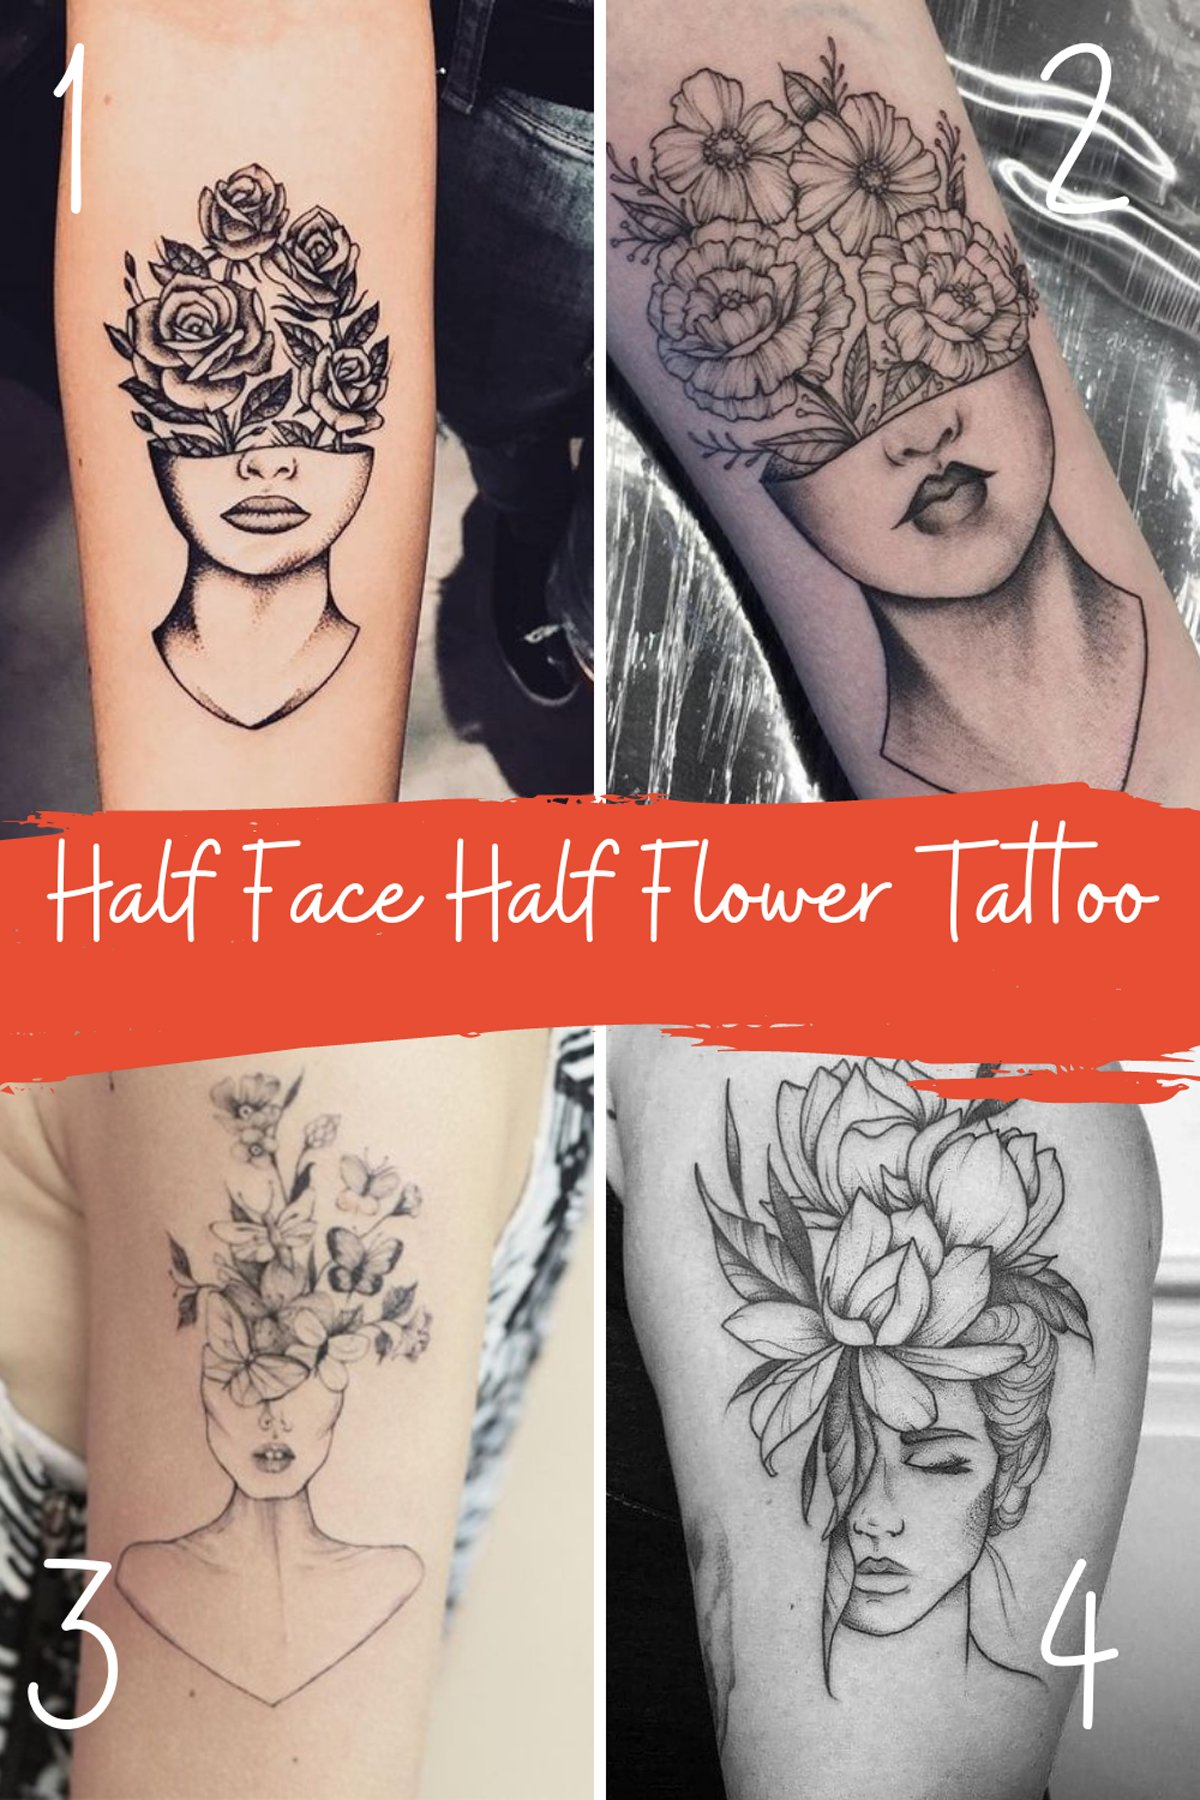 Flowers coming out of a face tattoo ideas